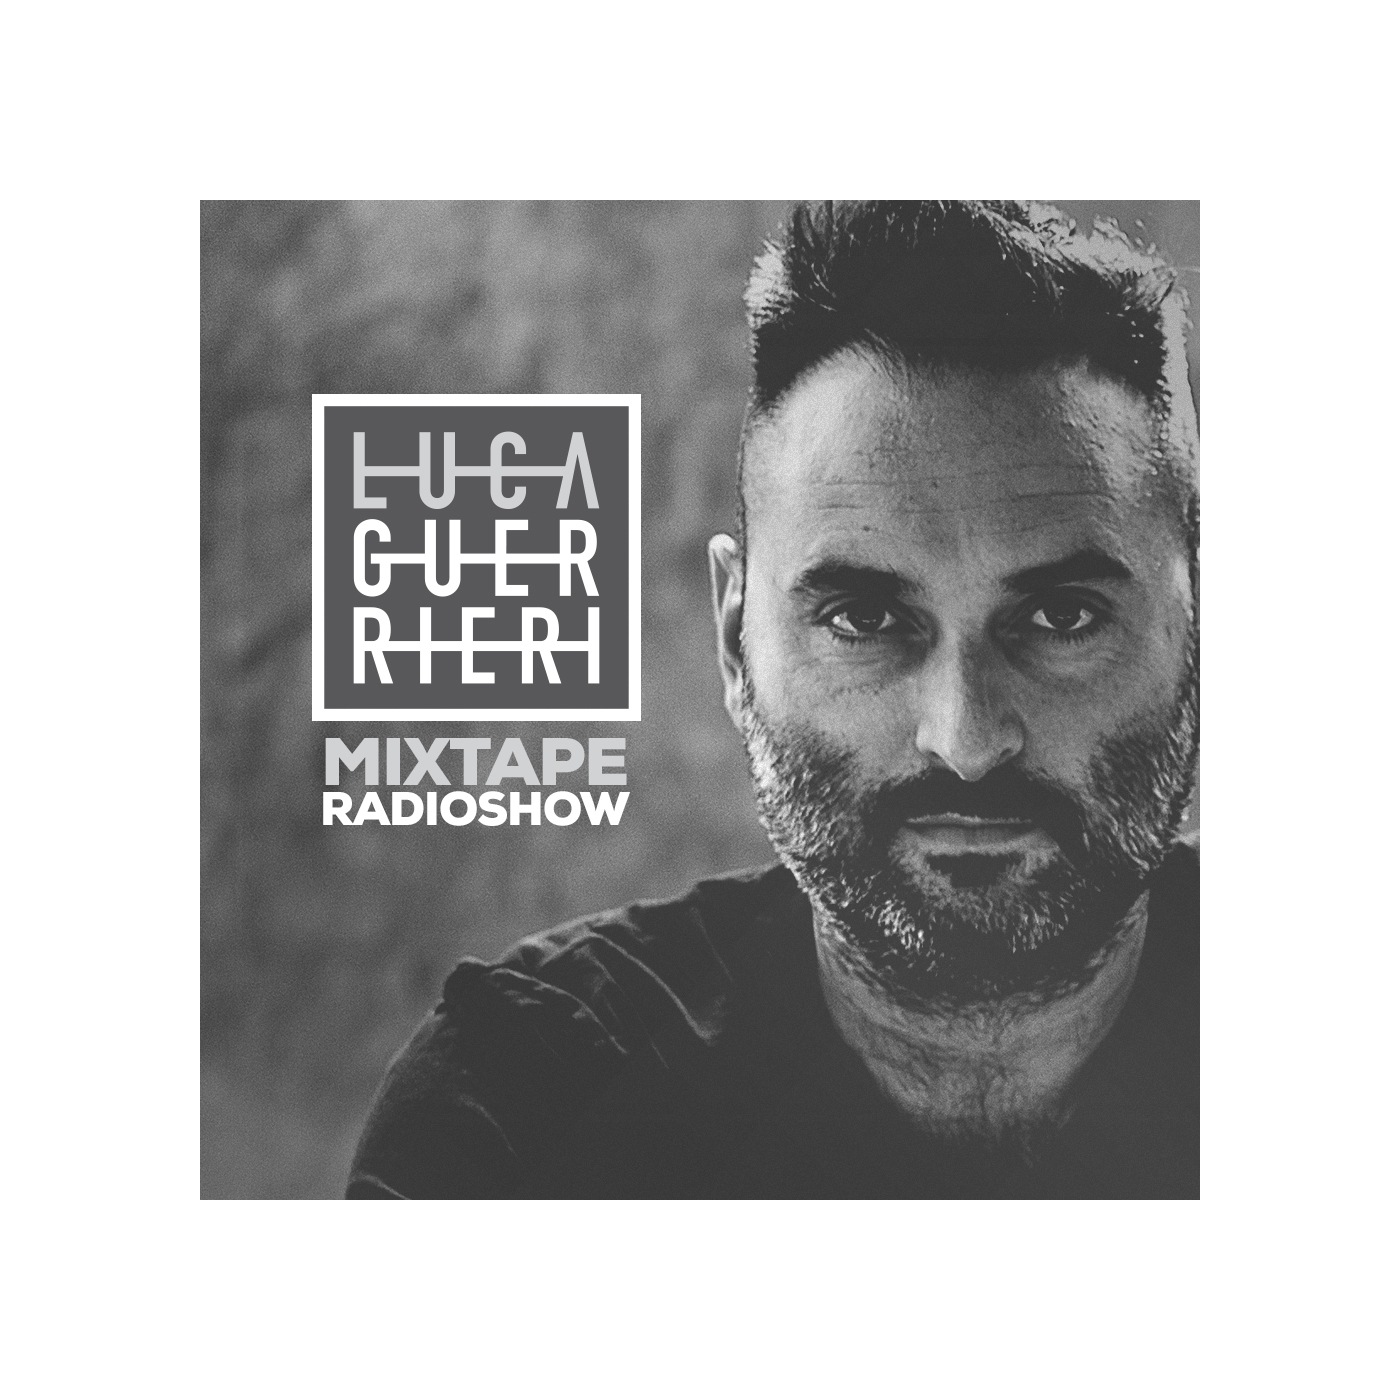 Mixtape Radio Show by Luca Guerrieri